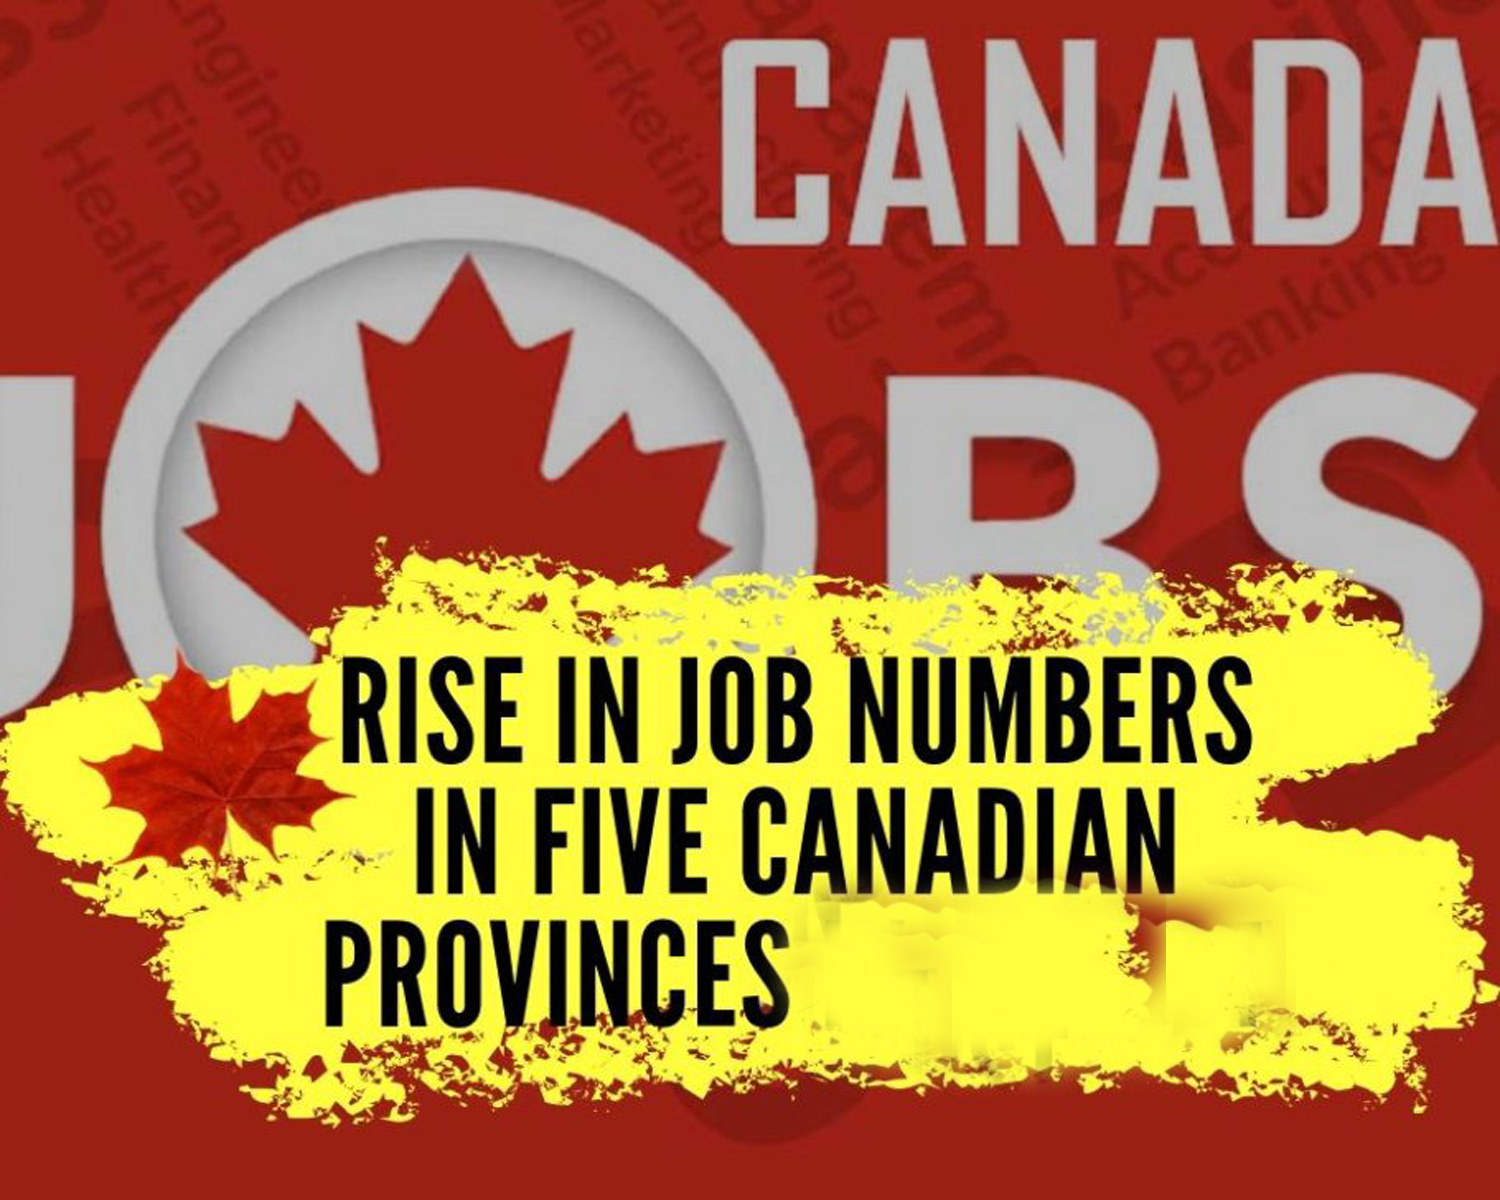 Job Opportunities in the Canadian Provinces